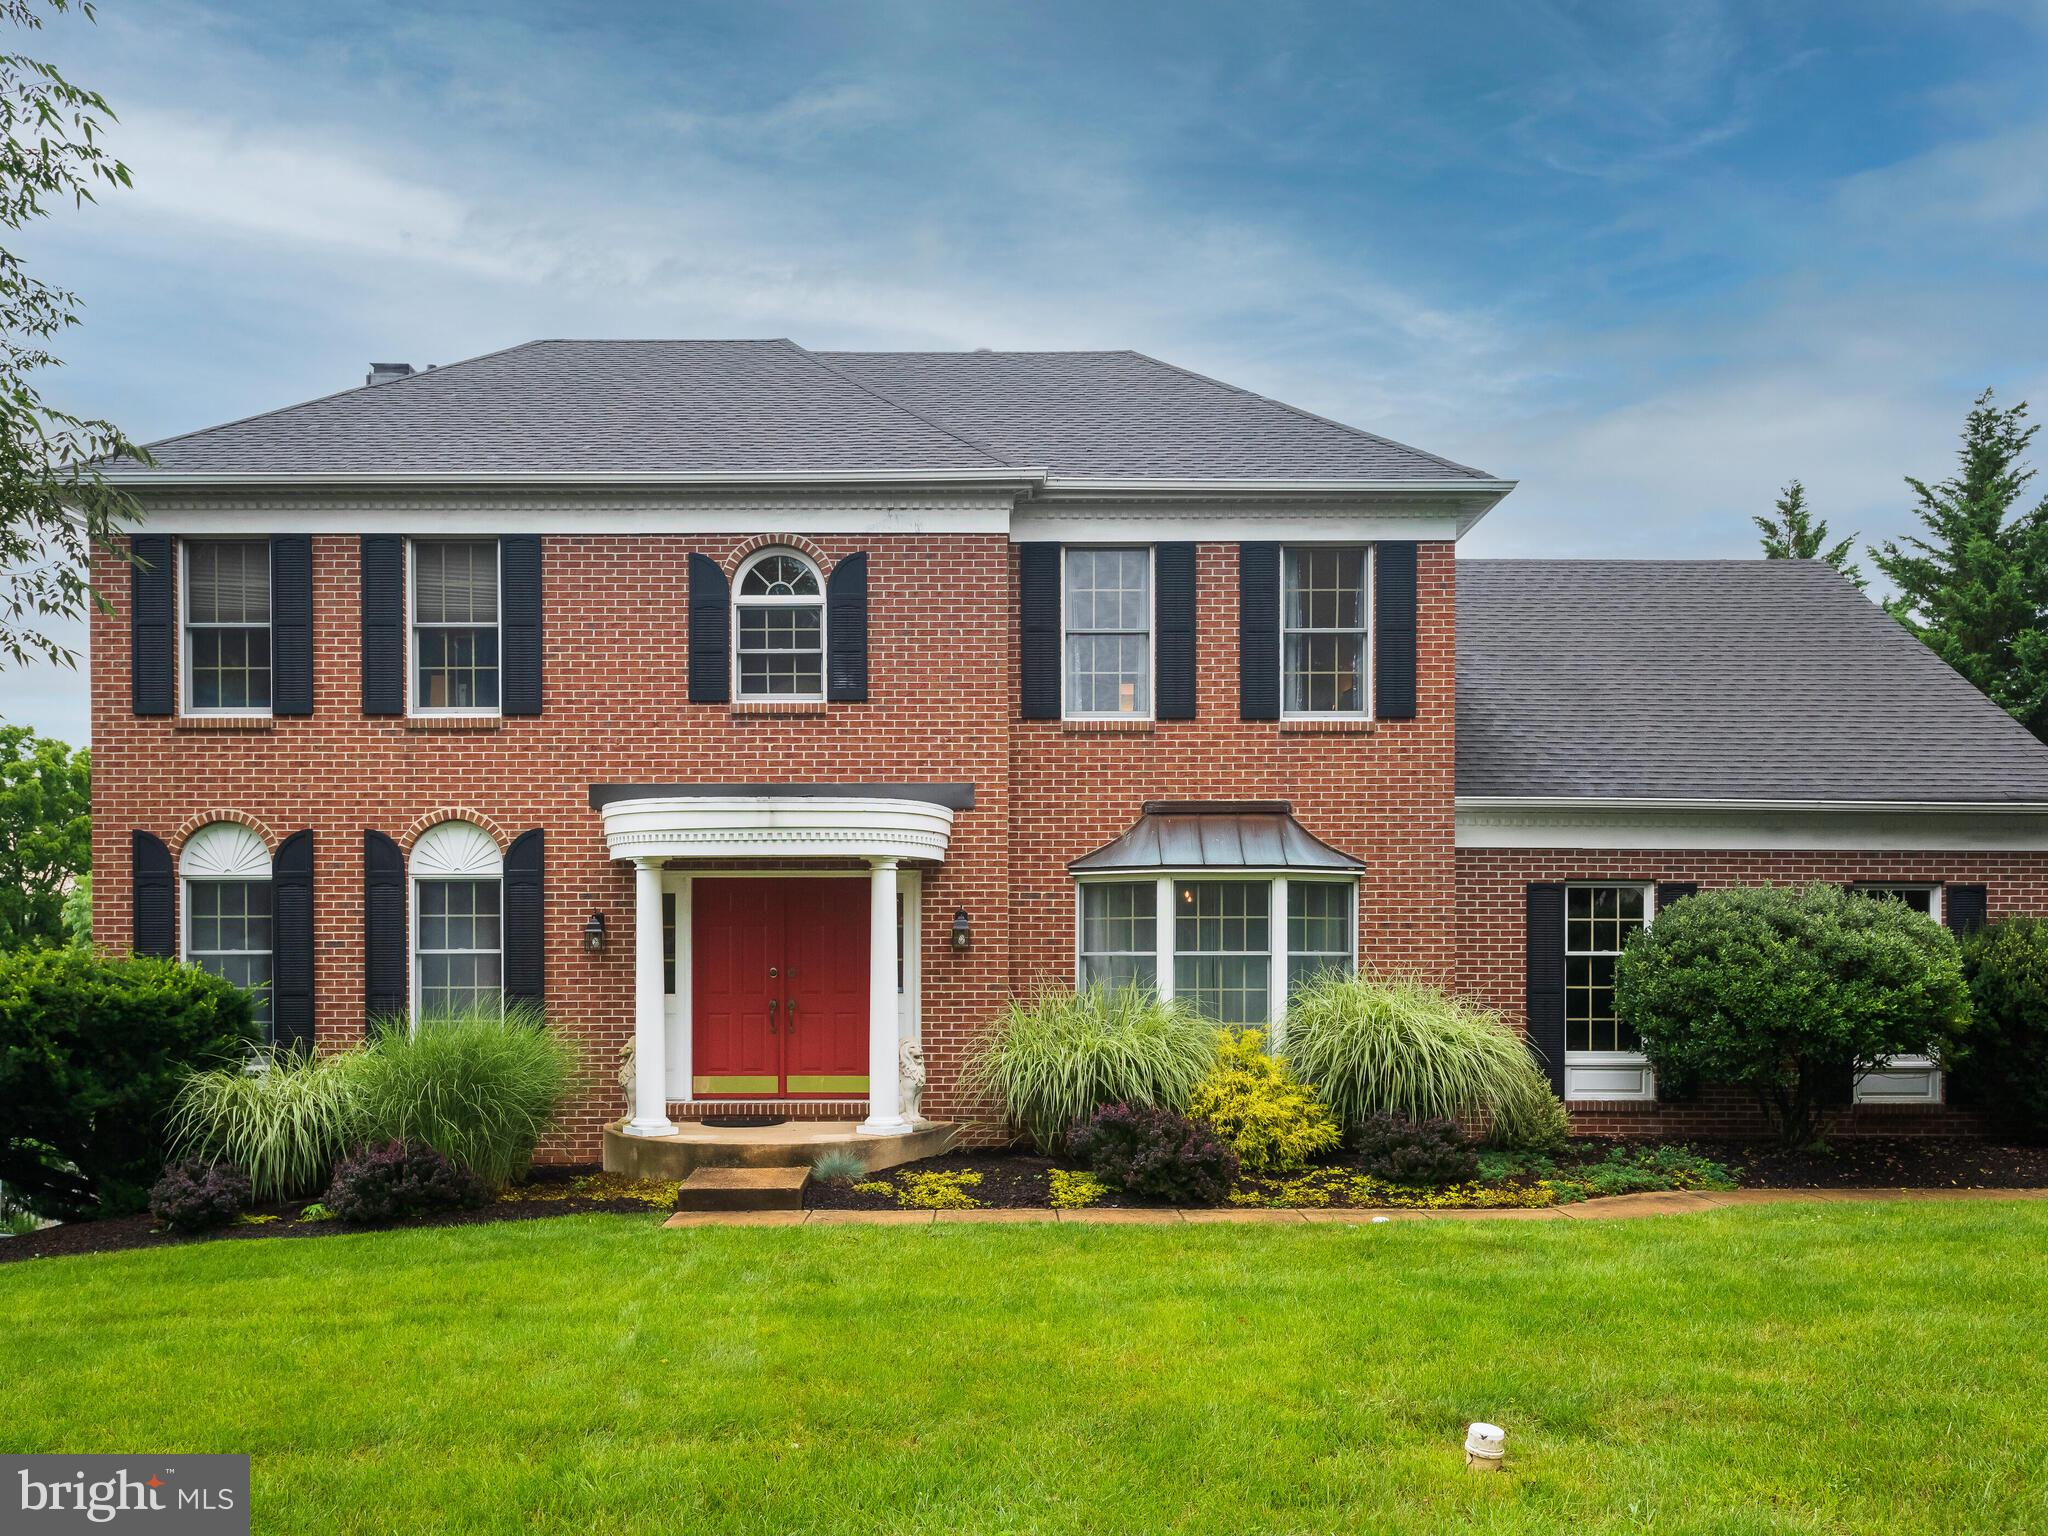 Welcome to 114 Sussex Road. This stately 4 bedroom, 2.5 bath federal style home is nestled in the heart of West Goshen Township in the highly sought after community of Brandywine Knoll. This sprawling space welcomes you by means of the grand 2-story foyer. You are immediately captivated by the light and airy feel to this open concept design that is bathed in natural light. Flanked by both the spacious formal dining room and also the formal living room, this space transitions seamlessly to the heart of the home located toward the rear of the home, the custom kitchen. Complete with rich medium hued cabinetry that pairs perfectly in two-toned cabinetry trend with the island, this area holds ample counter space that is dressed in granite, and the island holds a charming butcher block top accent. This area of the home holds an eat-in option as well and through sliding glass door accent blends indoor and outdoor living seamlessly. Step onto the spacious deck that overlooks the private level lot. It is easy to envision your endless entertaining options from this area. Back inside the home you will also find the kitchen connects fluidly to the family room, complete with brick fireplace focal feature. Unwind after a long day in this comfortable space. The second story of the home houses the four bedrooms of the home. The primary bedroom is truly an owner's oasis, with double door access, walk-in closet, a spacious sitting area, and private en-suite. The private en-suite boasts double vanity sinks, a soaking tub, and private shower feature. The remaining three bedrooms on this floor are sizable, sharing the use of a full hall bath. With ease of access to many major routes and public transportation, 114 Sussex is also just a short drive to all of the convenience that West Chester Boro has to offer. From entertainment, to restaurants and shopping, Boro living is at your fingertips. Make 114 Sussex your next chapter of homeownership.